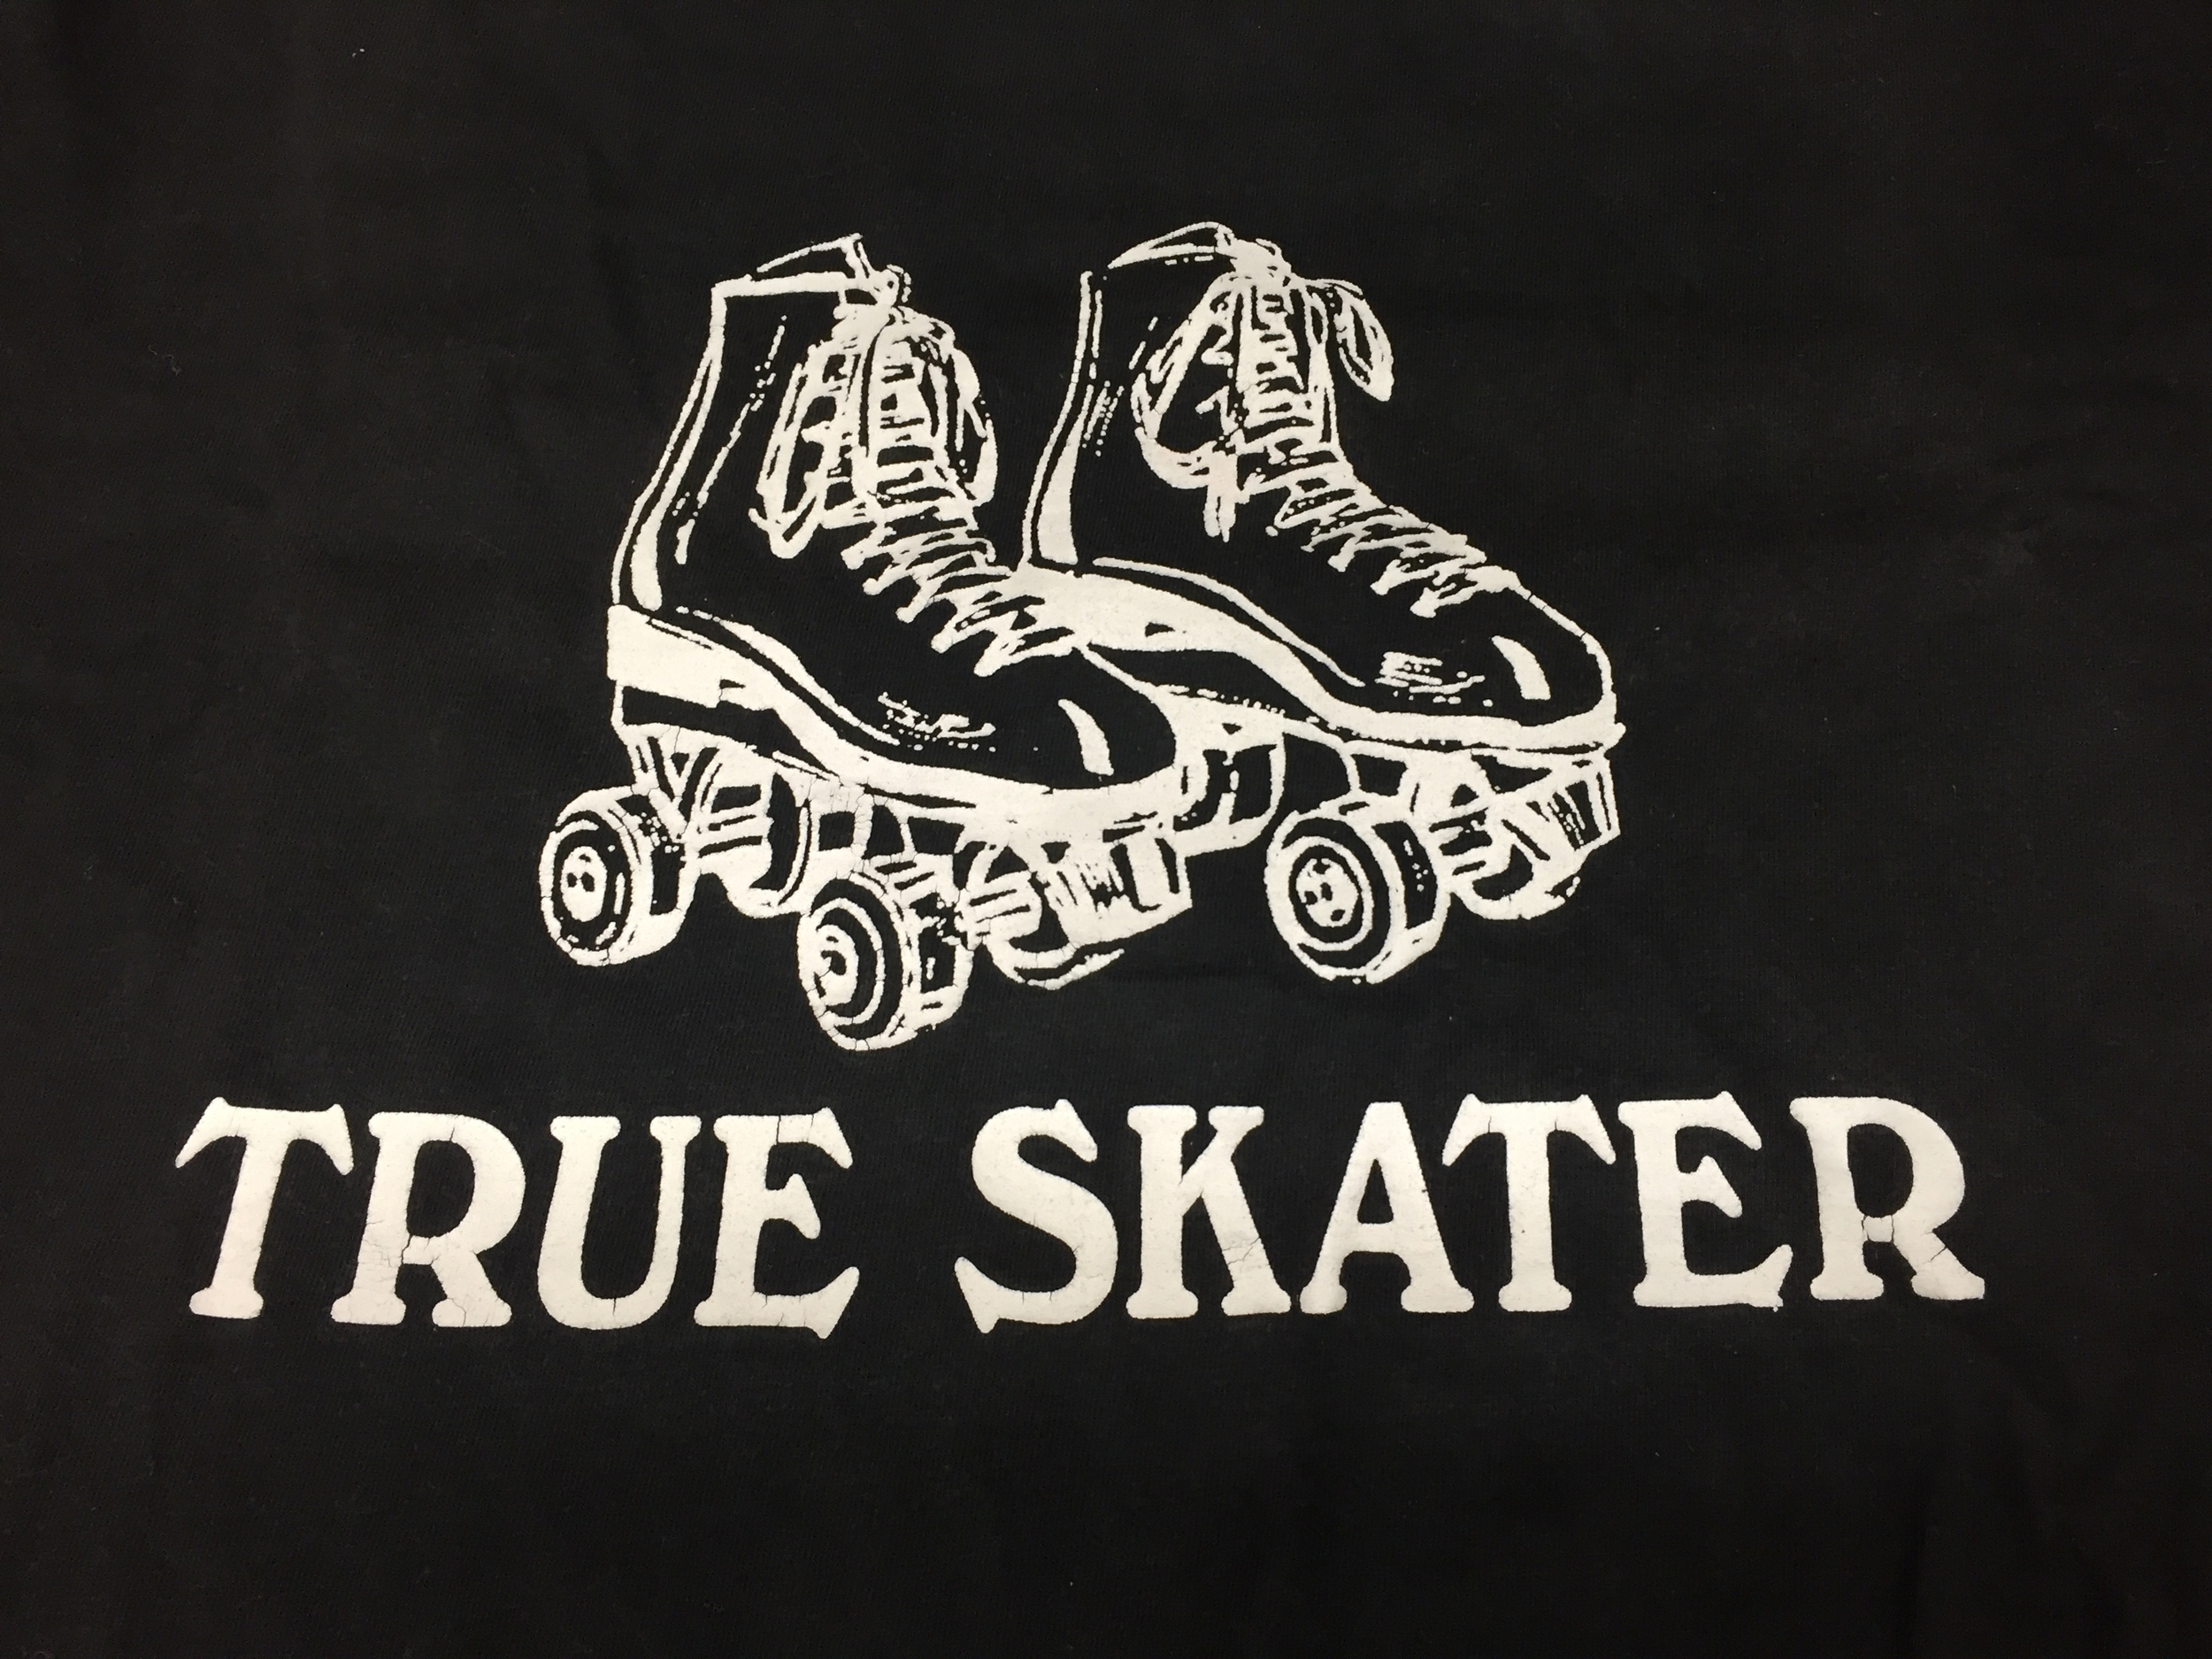 Logo design on skating uniform (mid 1980s). Donated to the Moorland-Spingarn Research Center at Howard University.